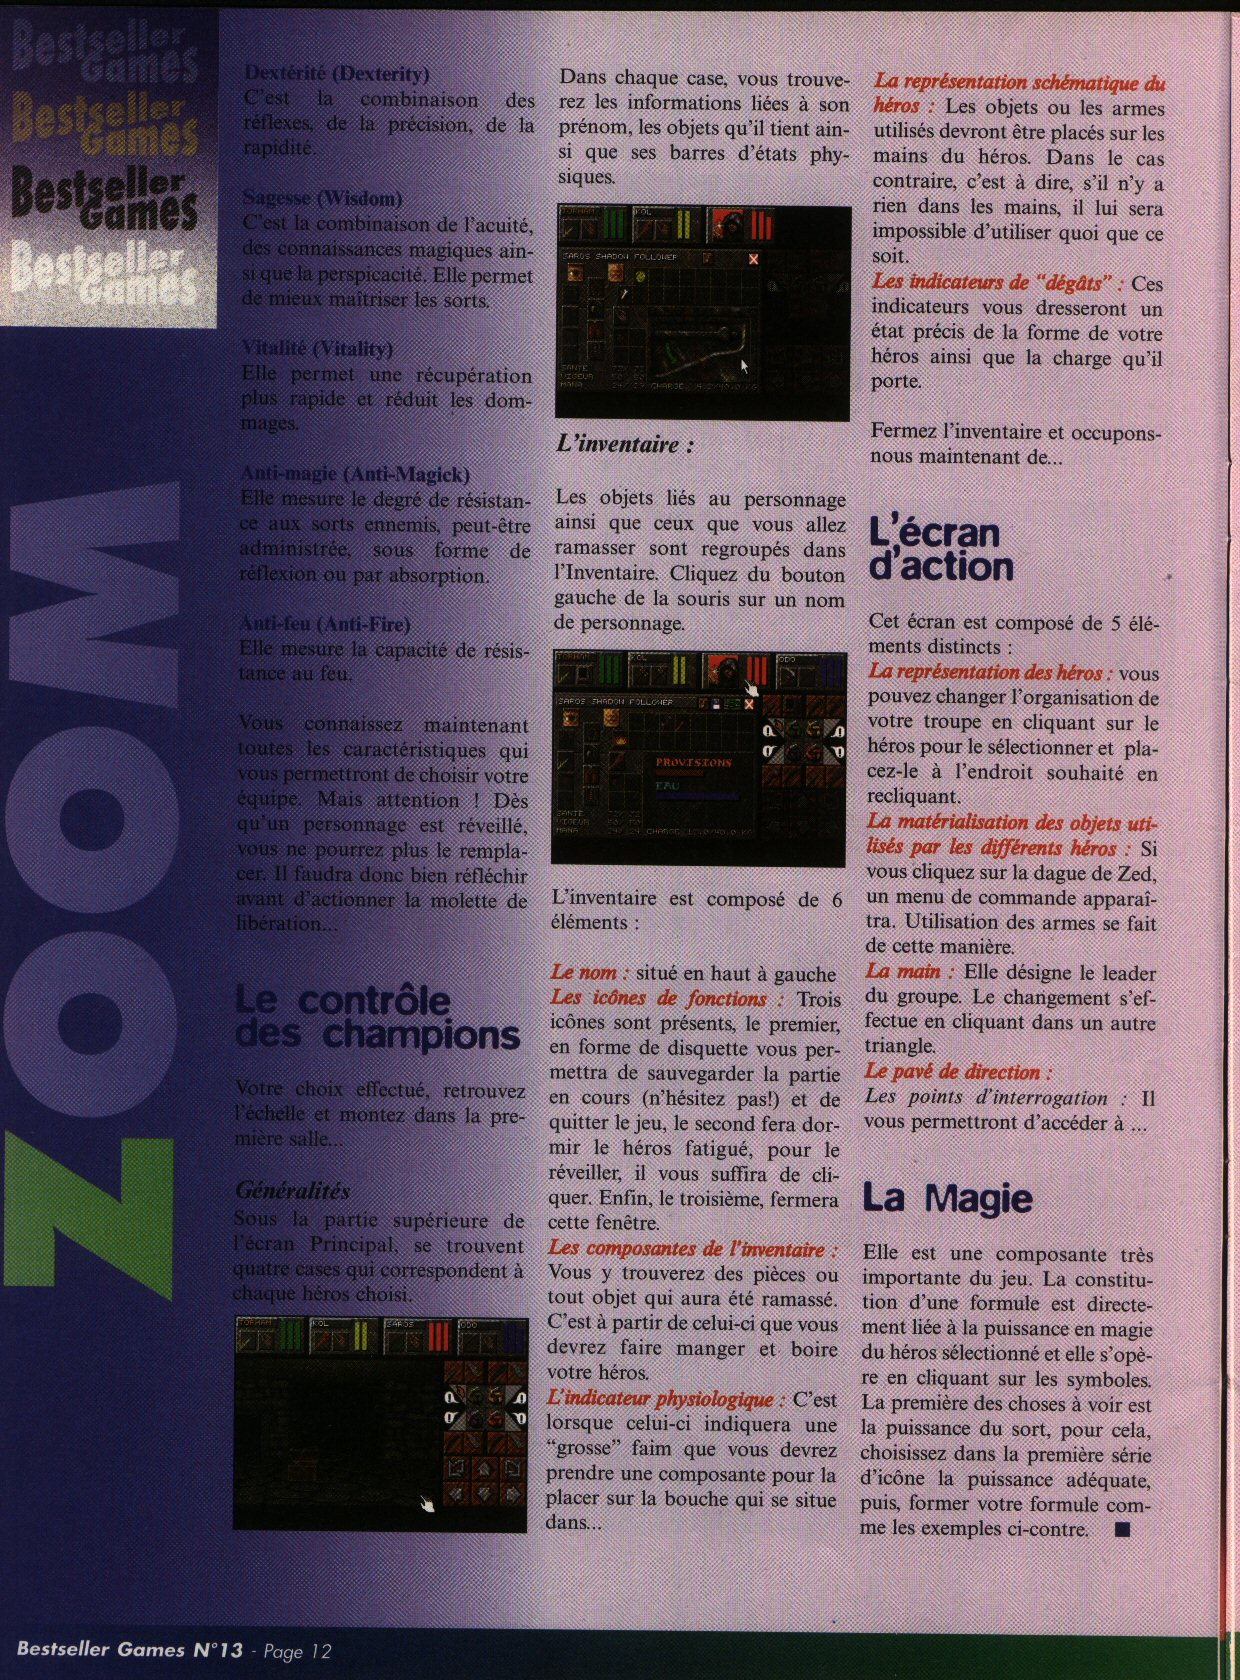 Dungeon Master II for PC (French) - CD version from French magazine 'Best Seller Games' Issue #13, September 1998 - Page 12